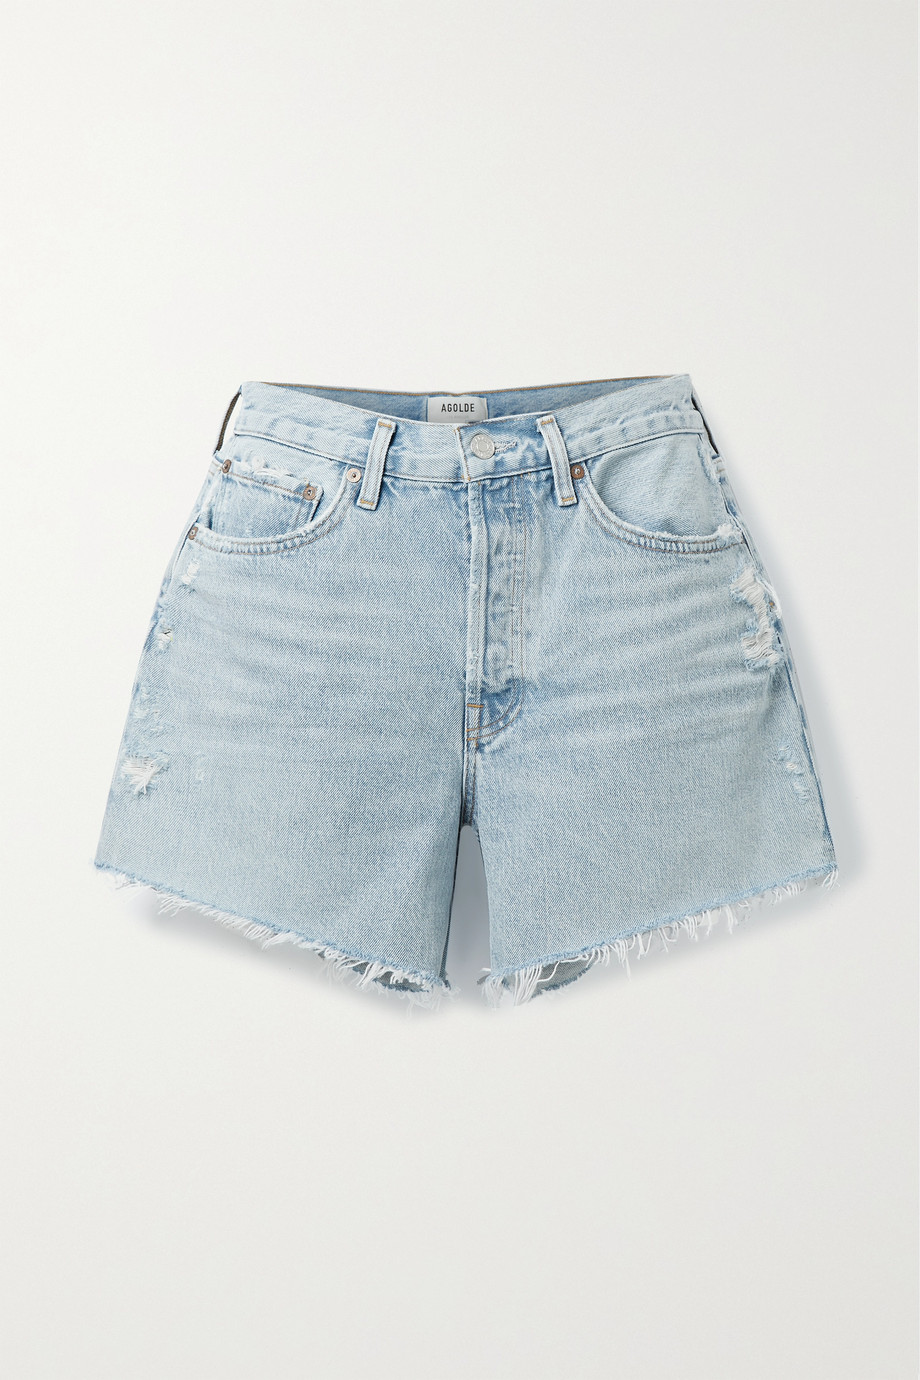 AGOLDE + NET SUSTAIN Parker distressed organic denim shorts